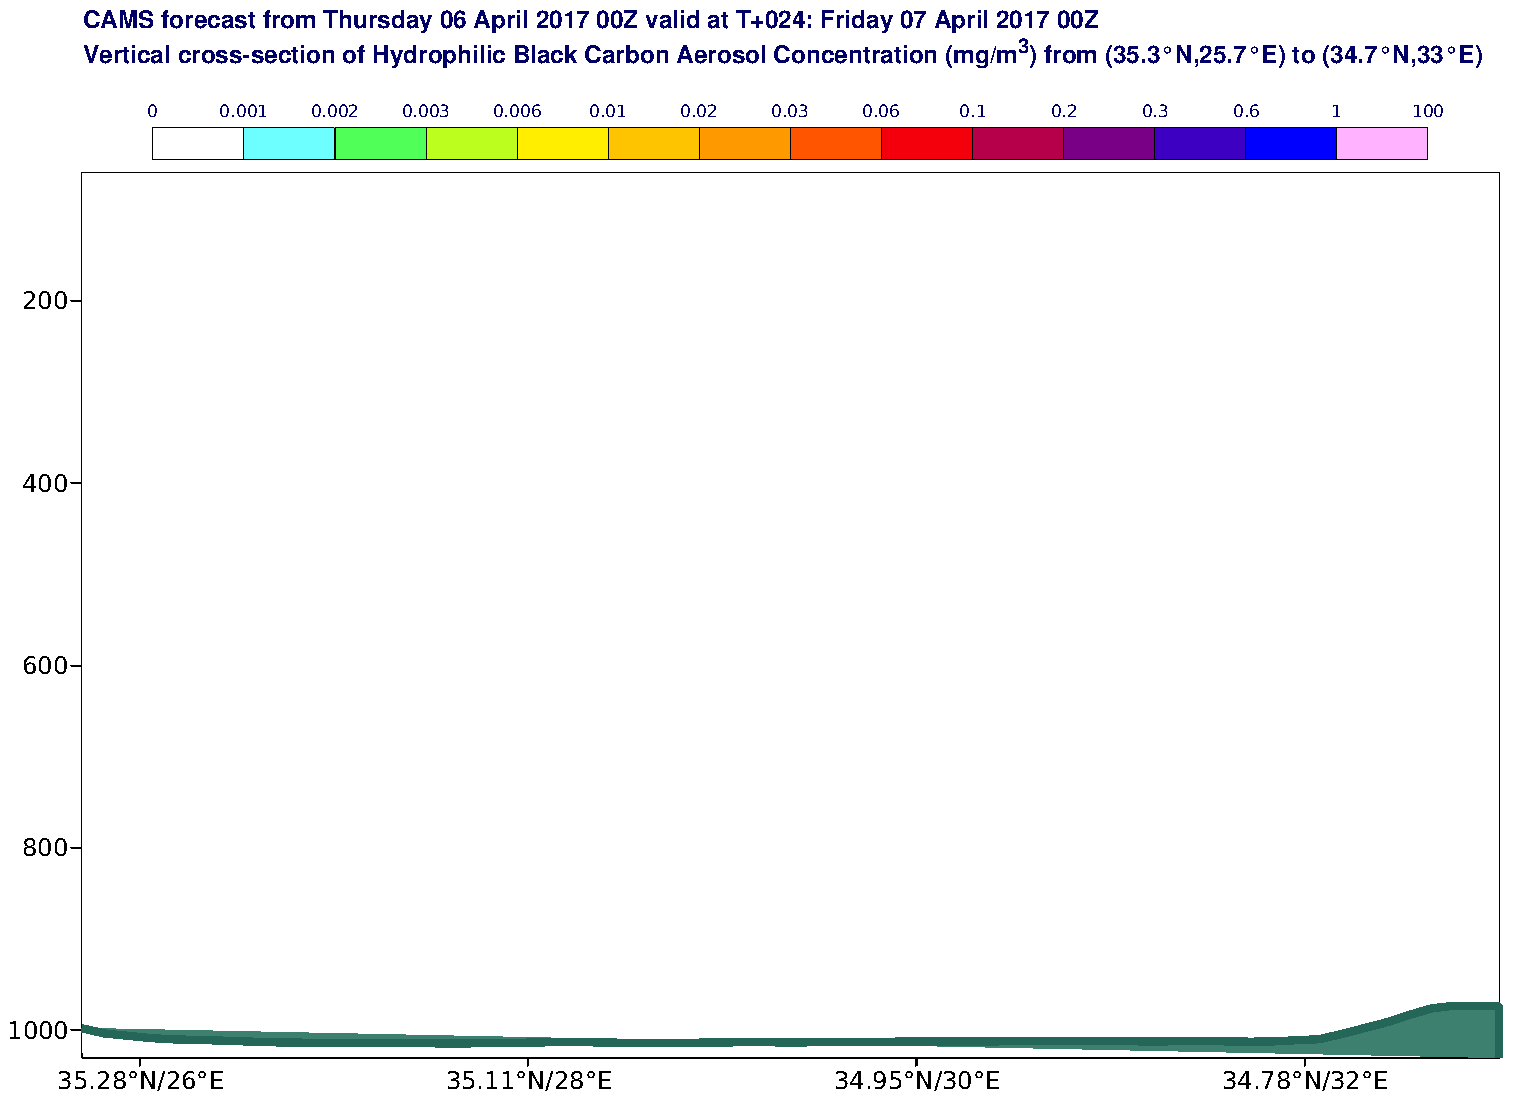 Vertical cross-section of Hydrophilic Black Carbon Aerosol Concentration (mg/m3) valid at T24 - 2017-04-07 00:00